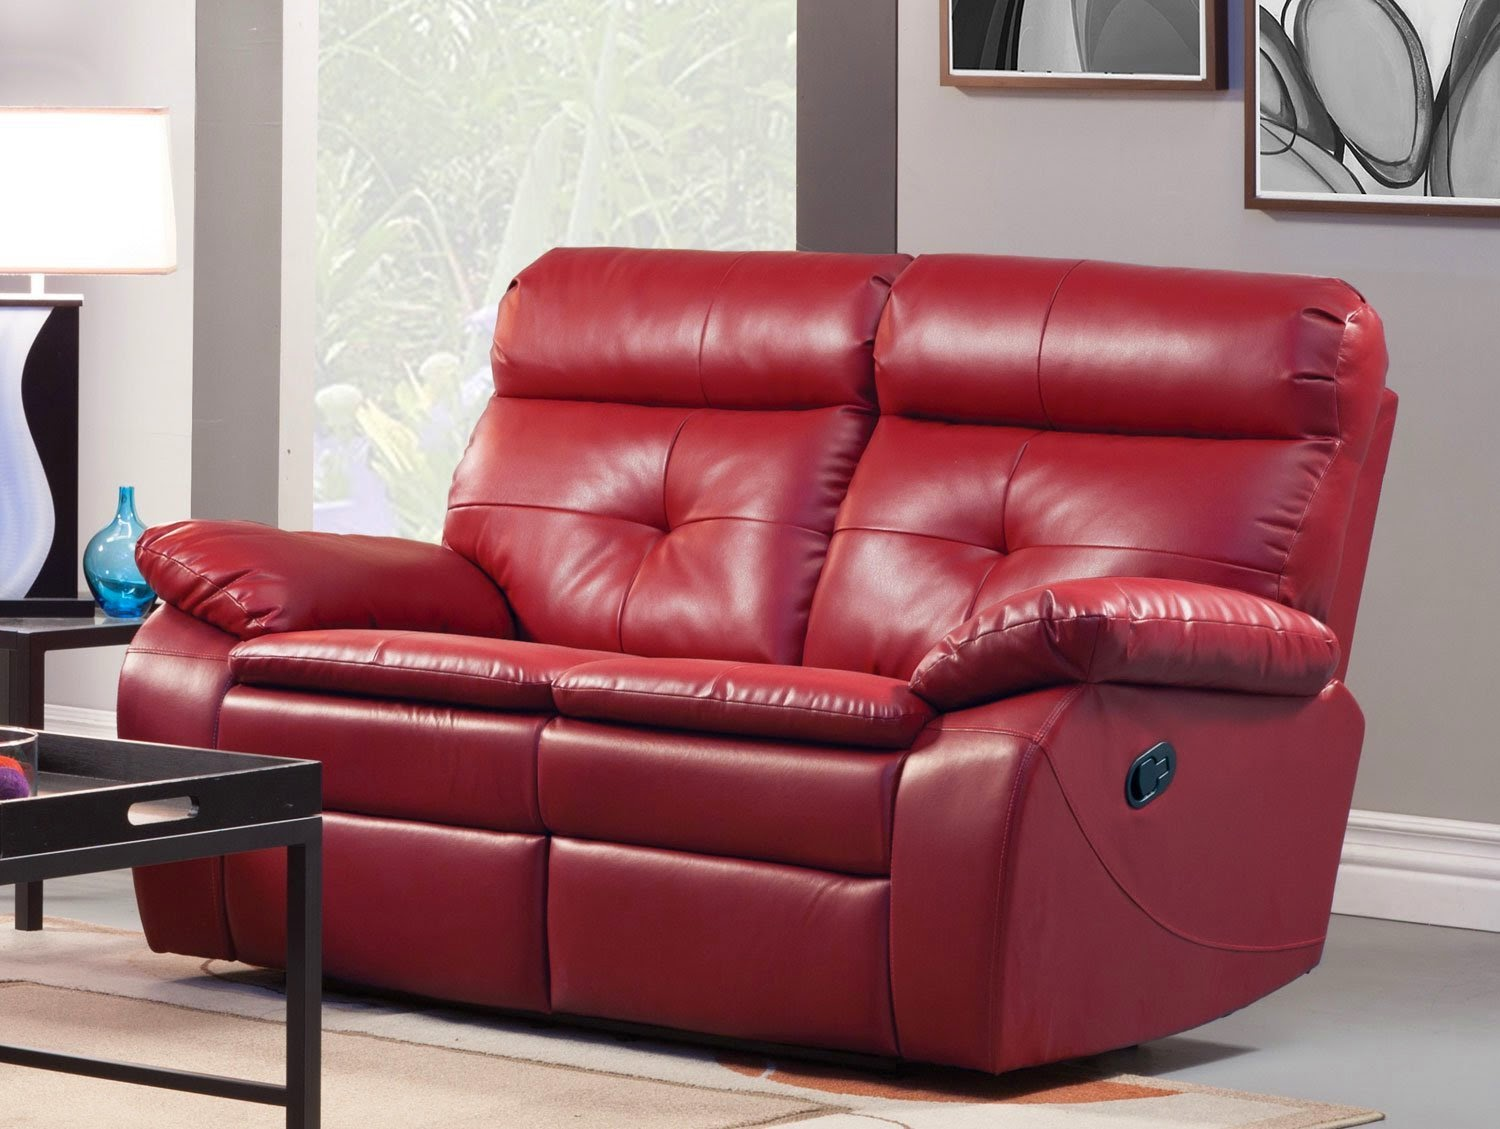 Wallace Love Seat Red : 2 seat reclining leather sofa - islam-shia.org